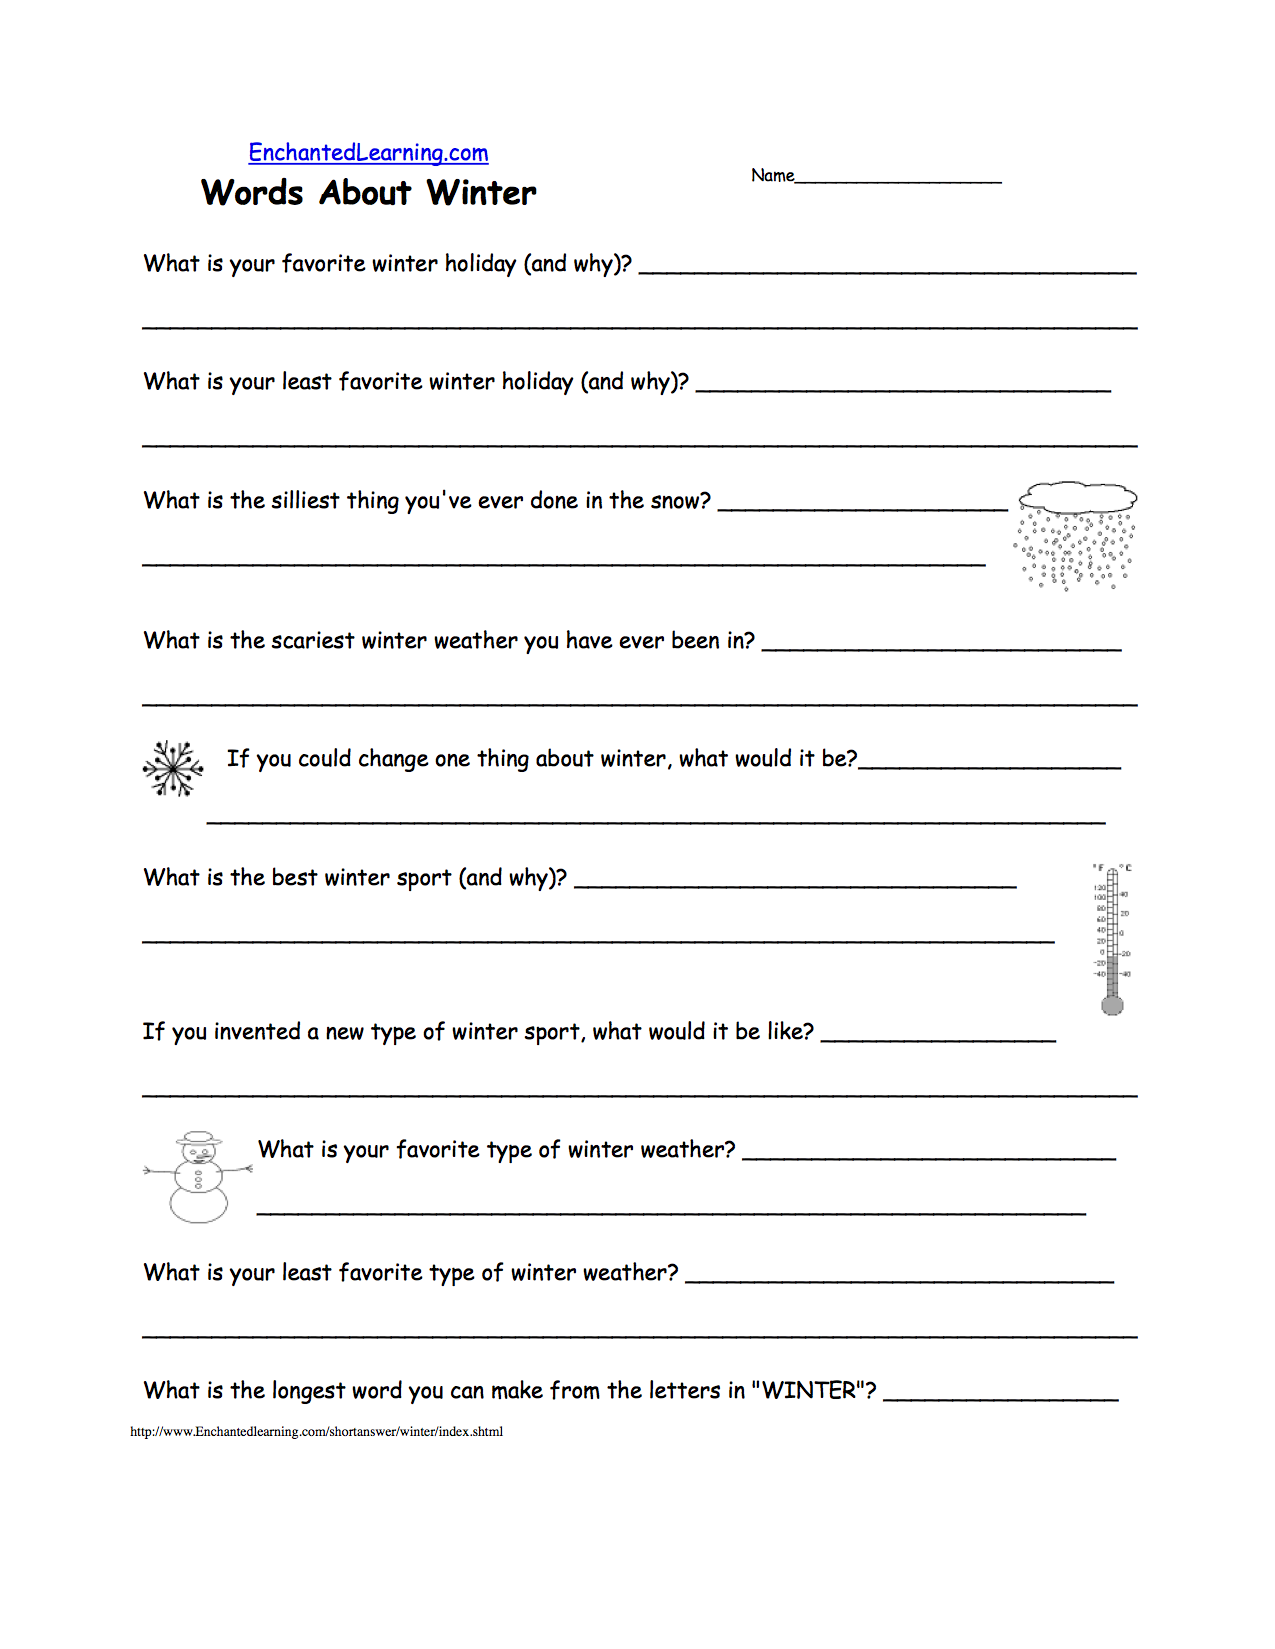 Weather the short answer worksheet asks 10 questions about winter